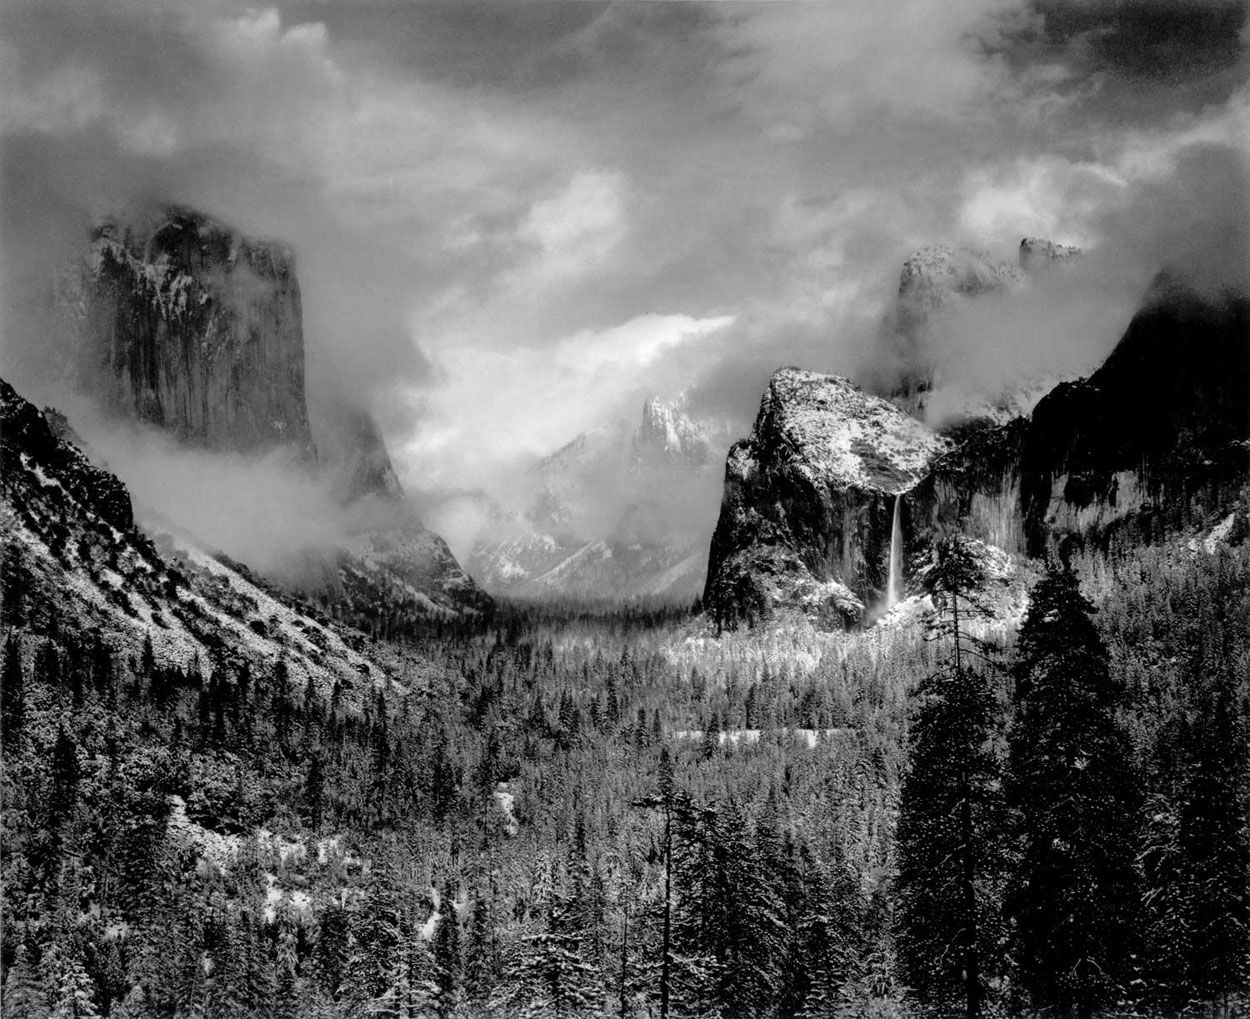 Ansel Adams. Buy this work as premium quality canvas art print from ...